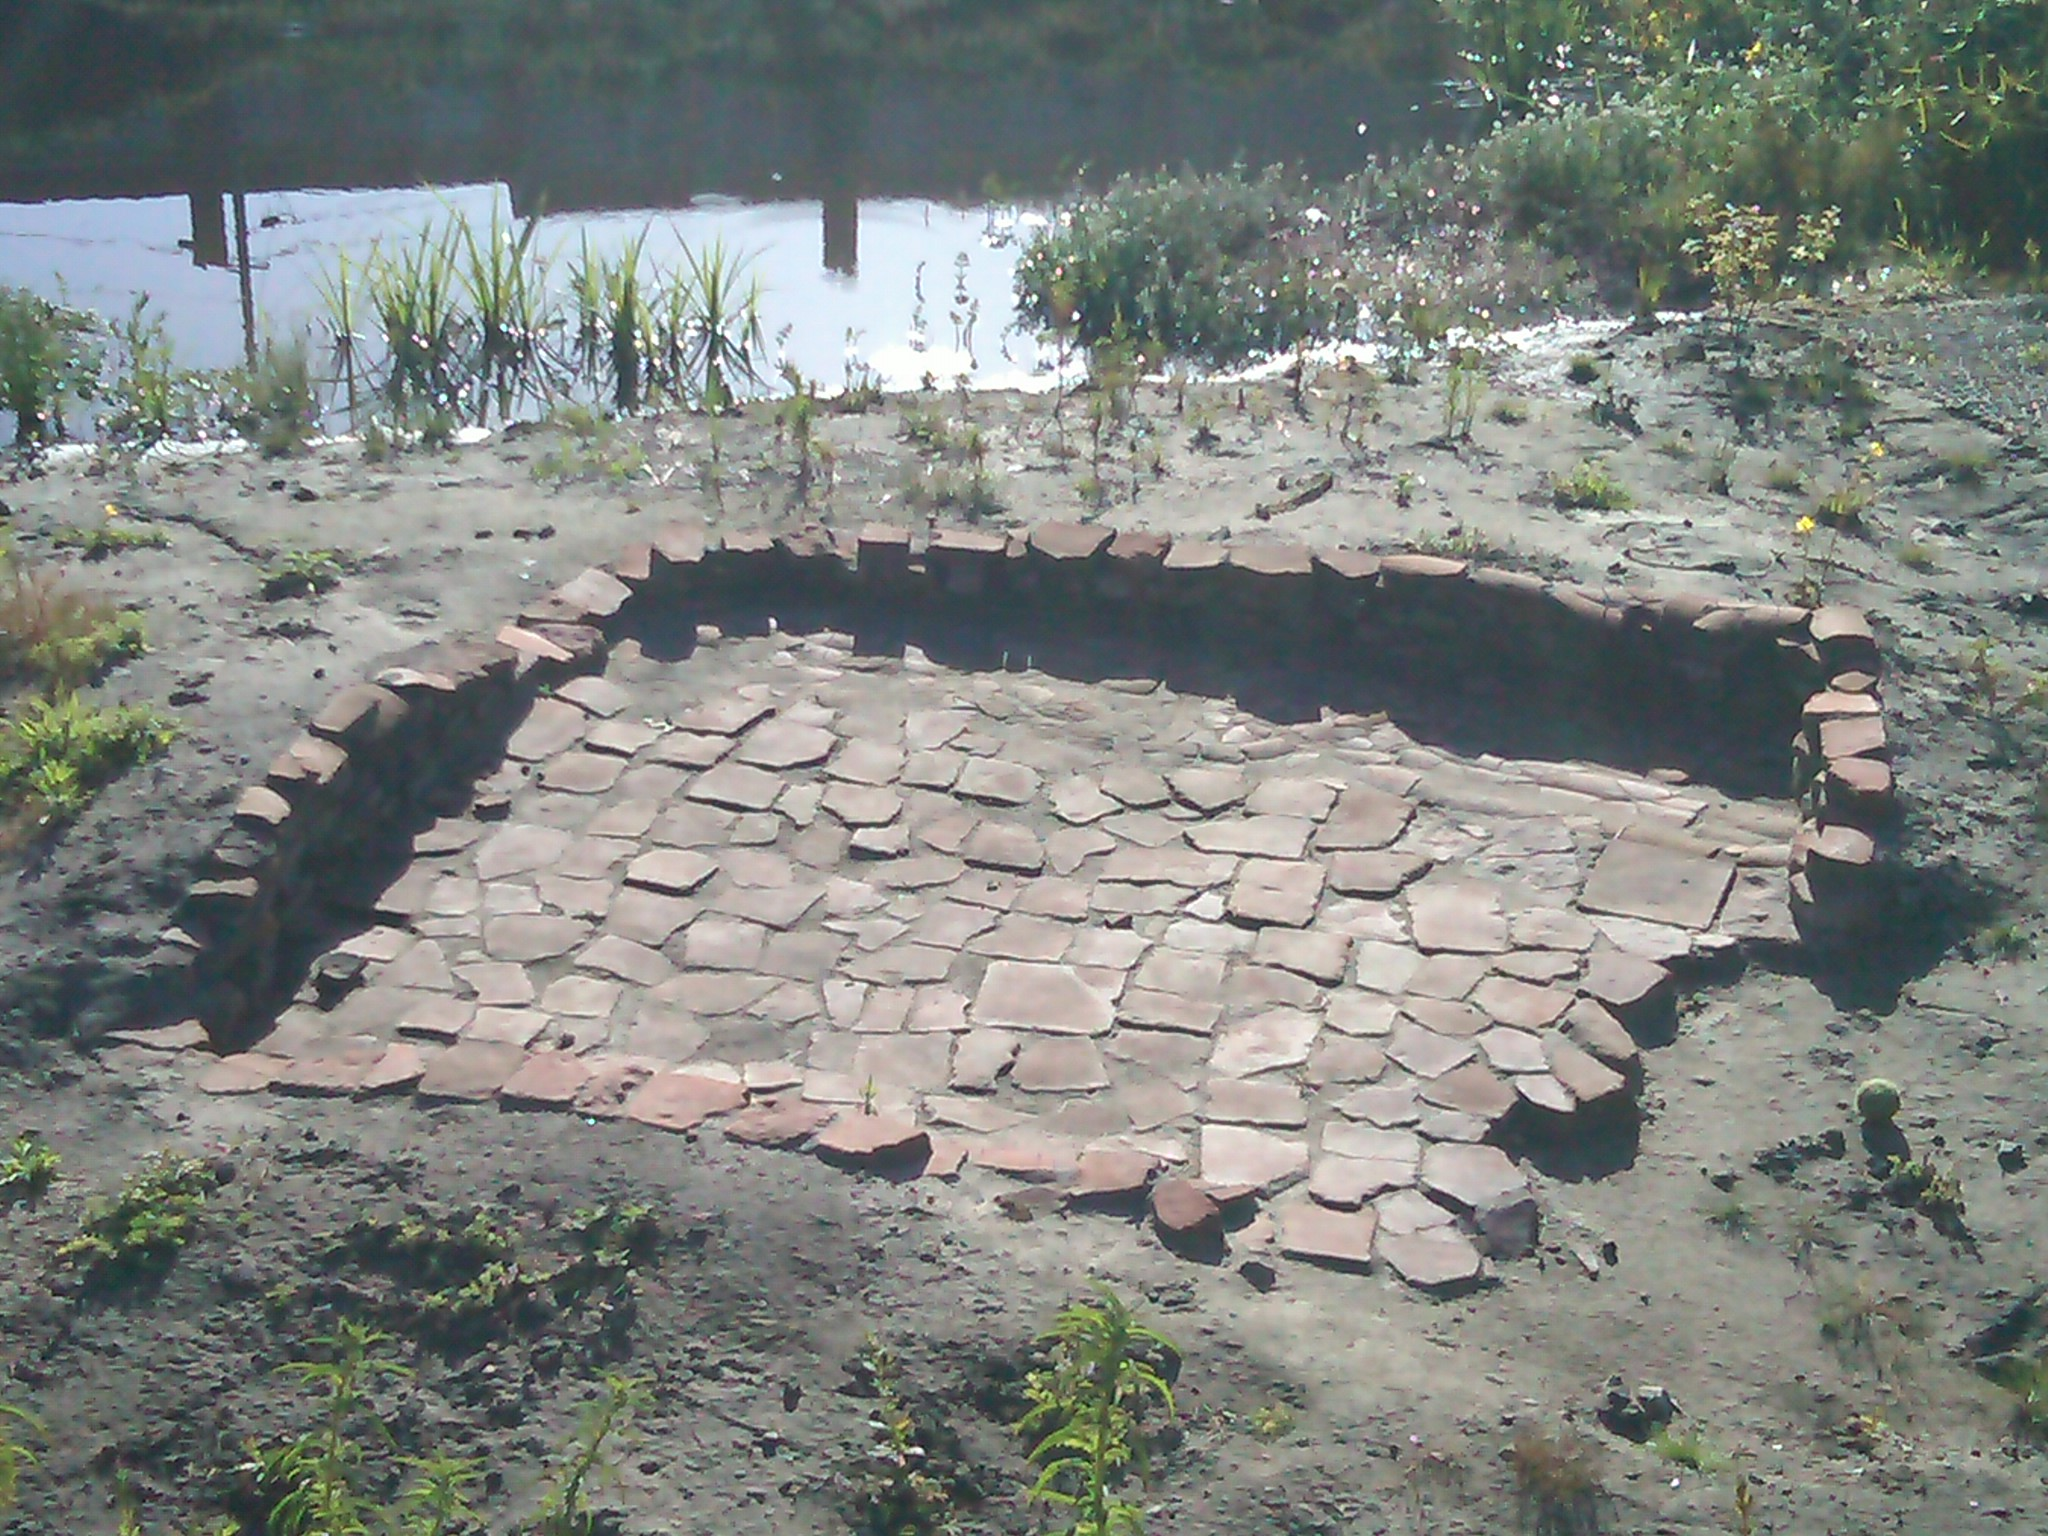 Part of El Polín Spring's Colonial-era archaeological site, an excavated water storage basin from an early 19th century adobe home (image from Golden Gate Audubon Society)